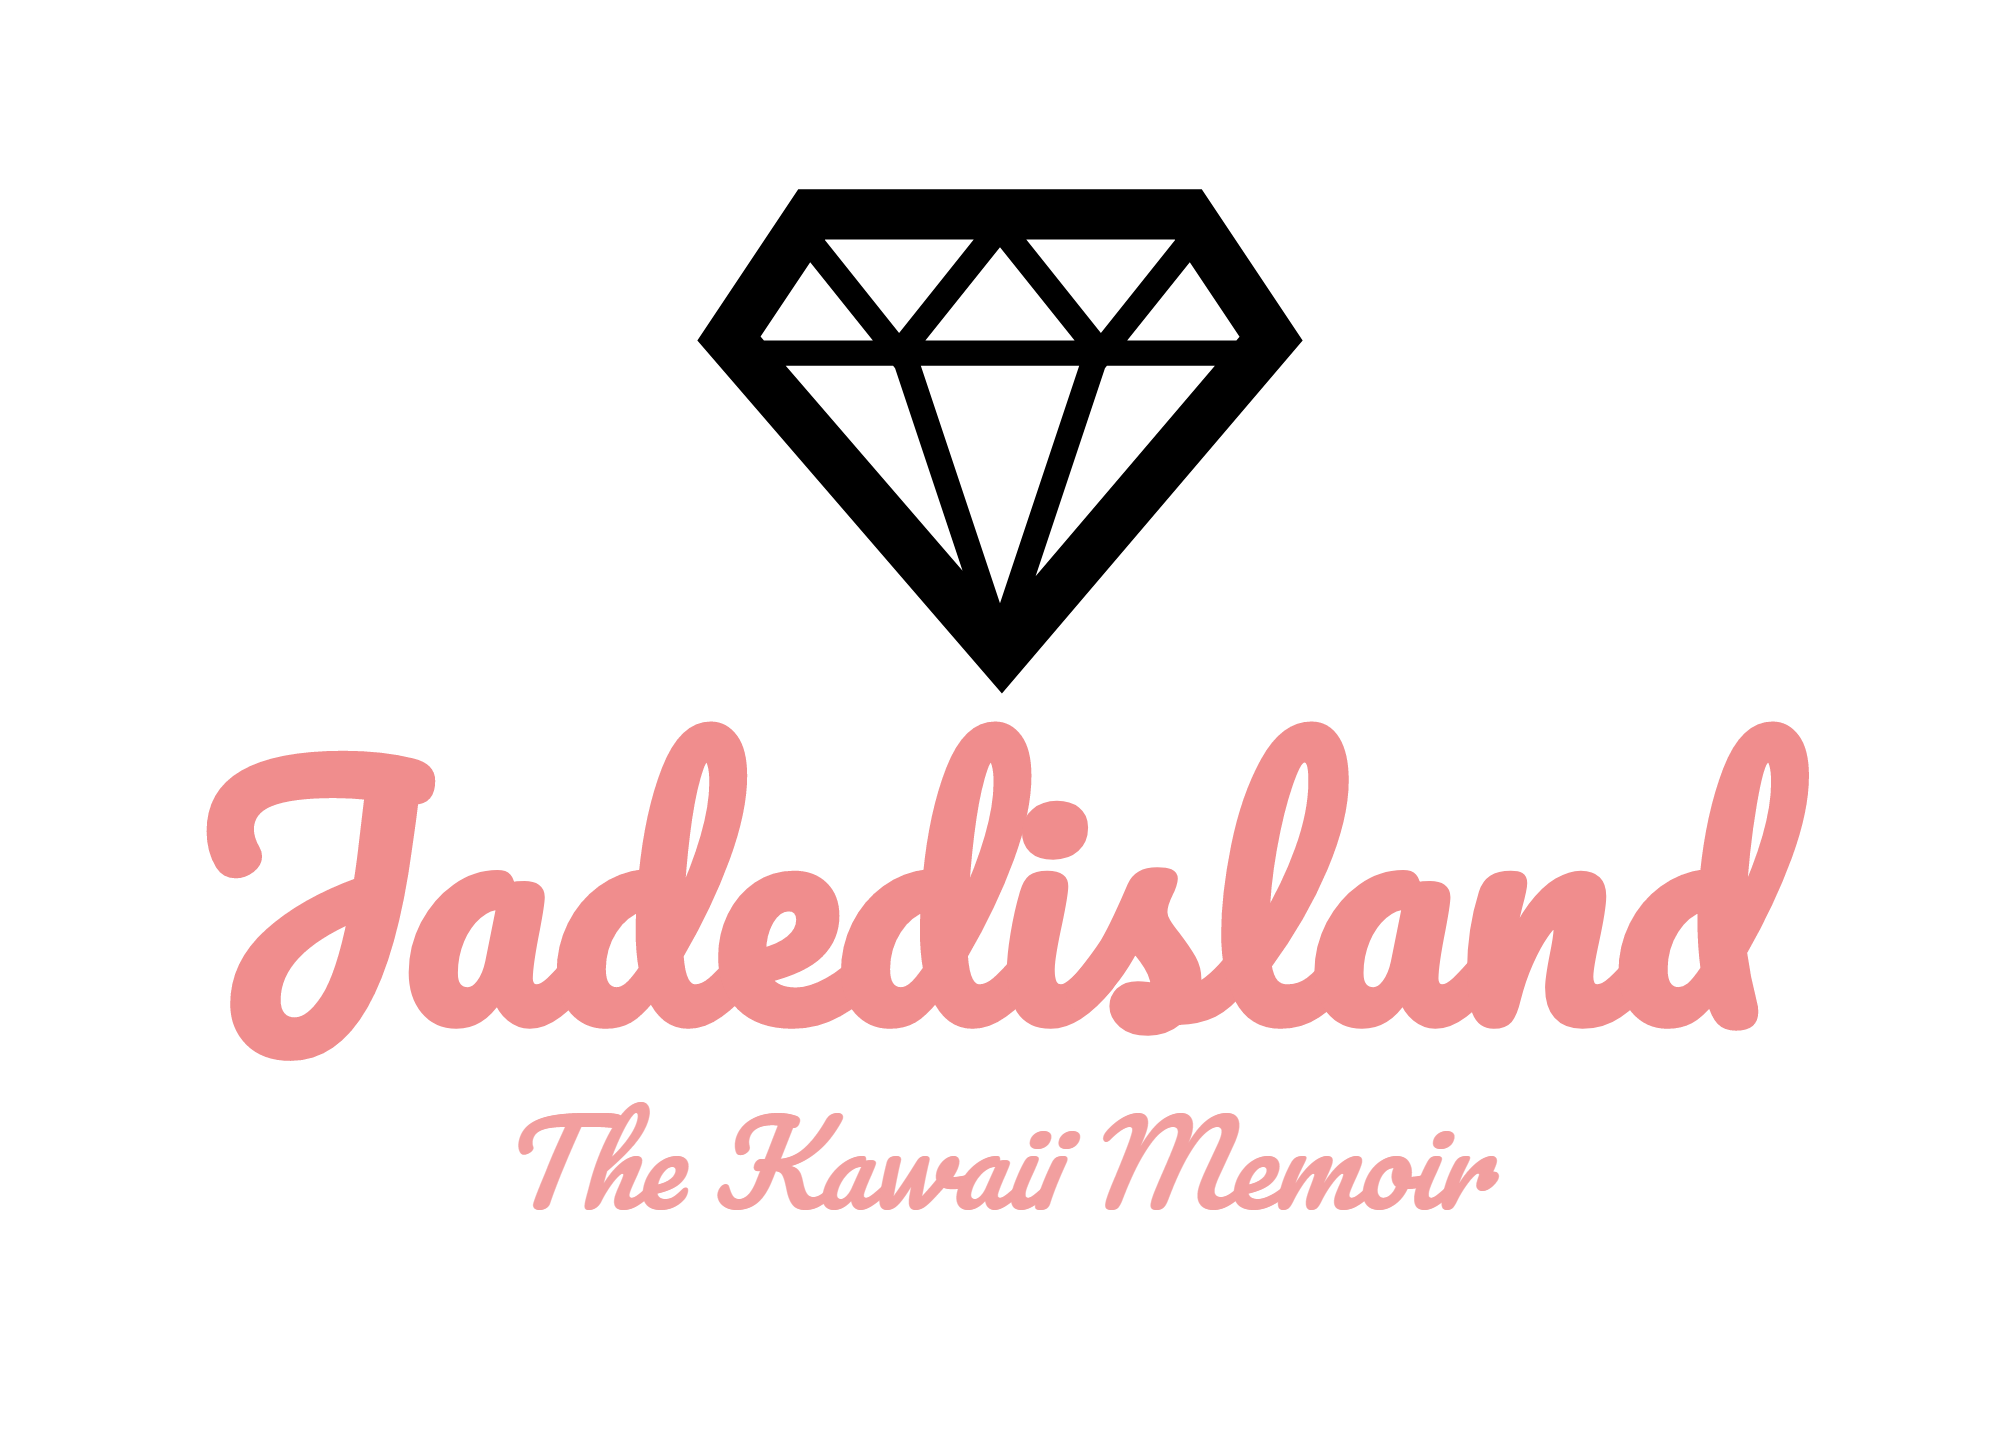 """""""Under your bed, and dancing to poetry in trees a kawaii monster is born. Equally chaotic and light a pastel monster delights all those who seek strength, color, and the power of self-expression."""" - Jadedisland"""